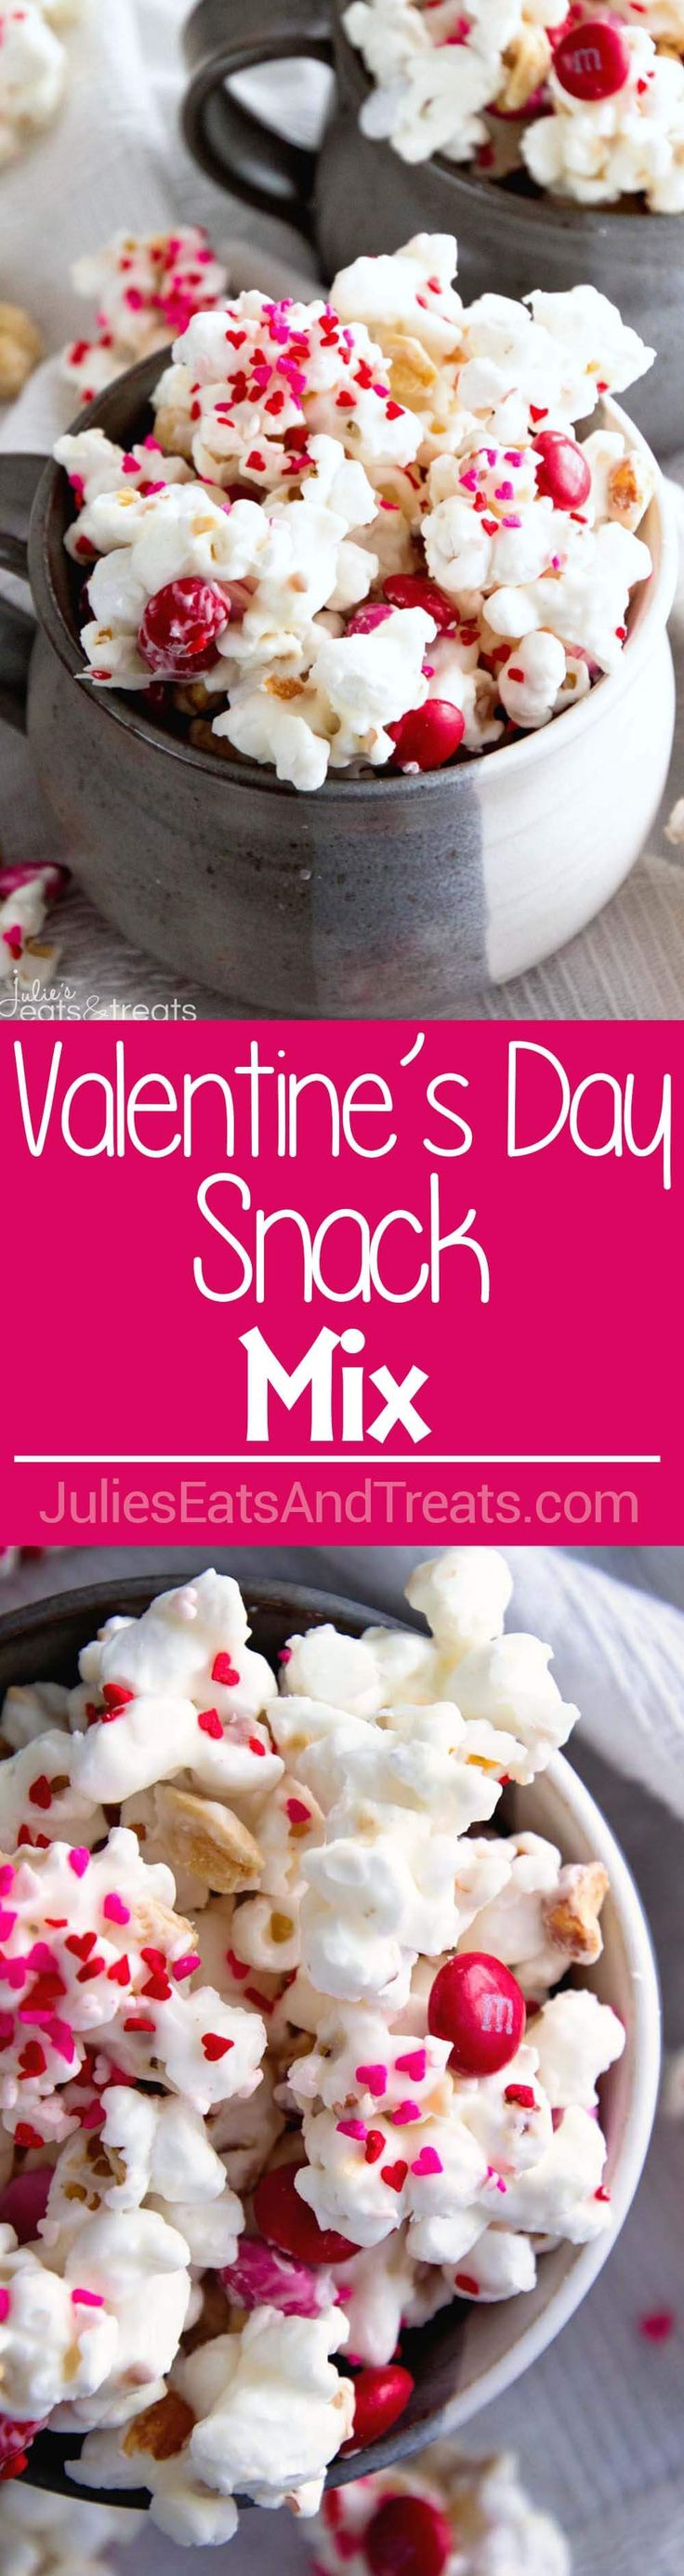 Valentine Snack Mix ~ Popcorn, Peanuts and M&M's coated in White Almond Bark! An Easy Sweet Snack for Your Sweetie! via @julieseats